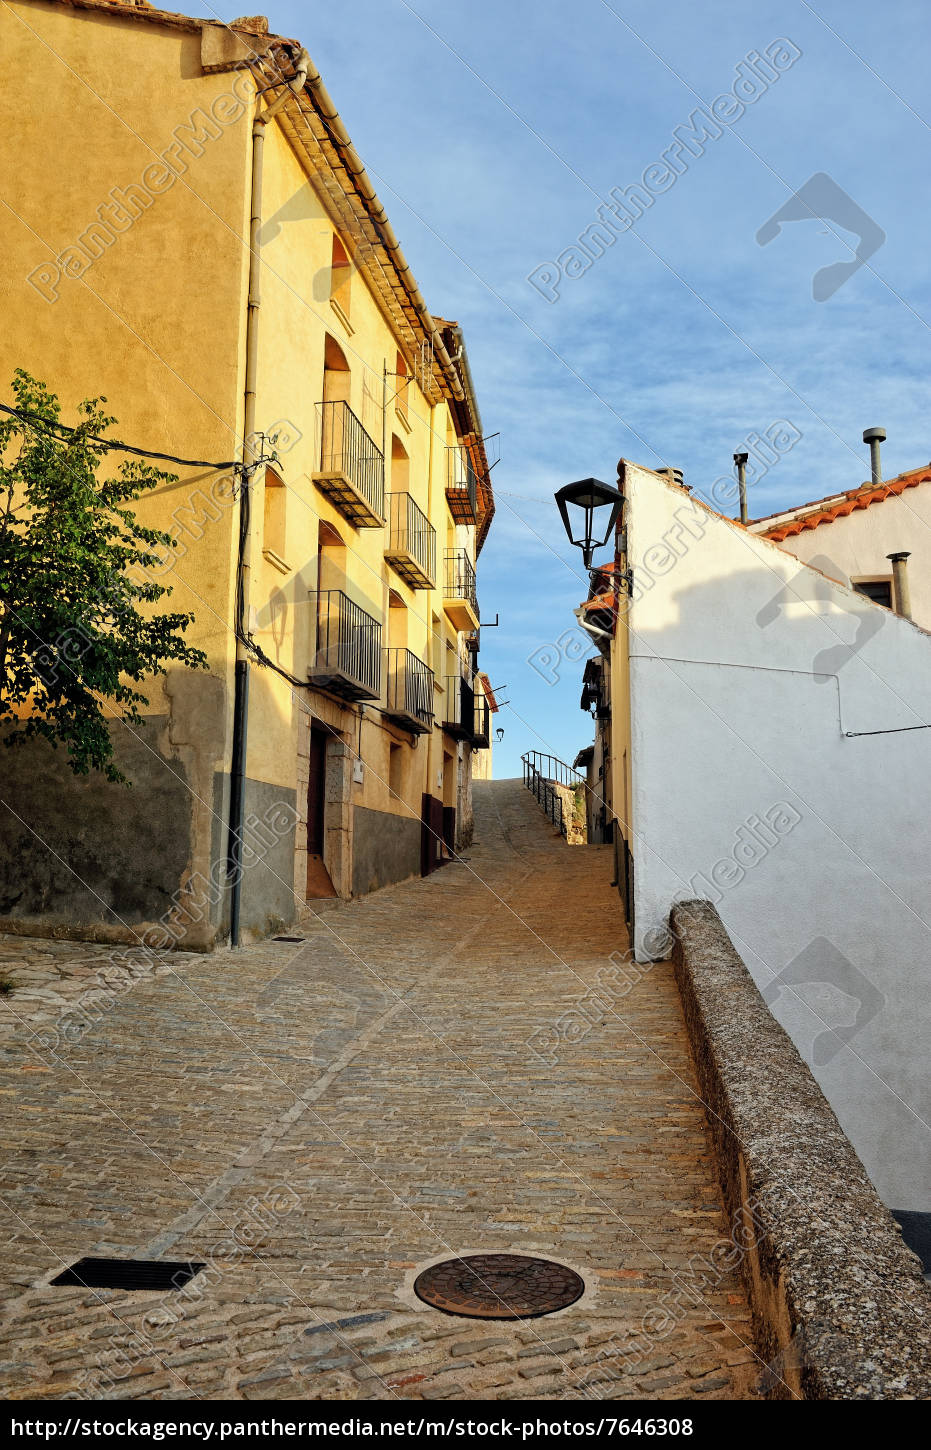 Streets Of The Small Old Spanish Town Ares Royalty Free Photo 7646308 Panthermedia Stock Agency The mexico spanish version would be. https stockagency panthermedia net m stock photos 7646308 streets of the small old spanish